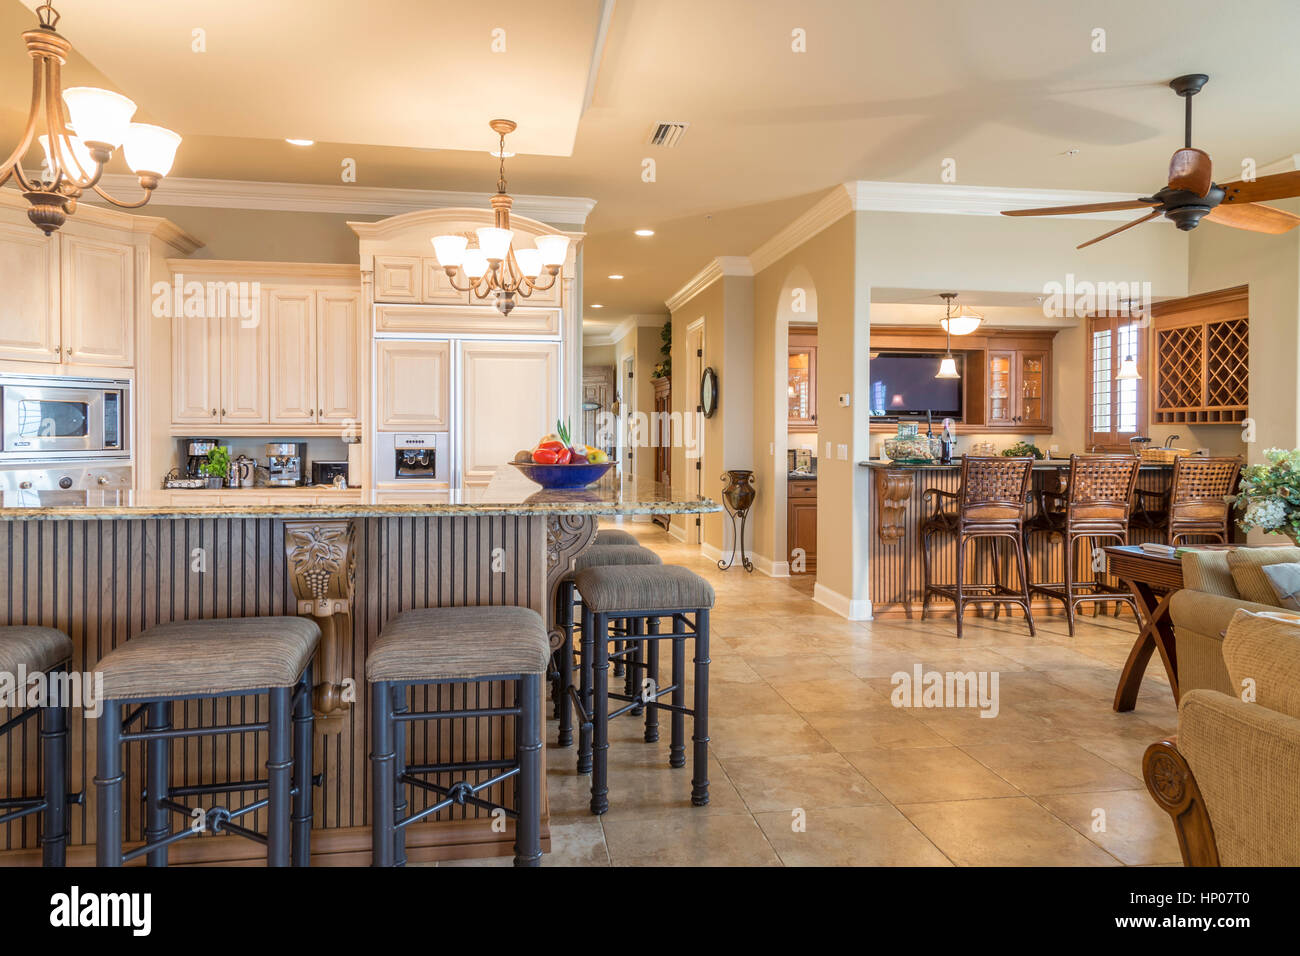 Huge Condo With Showcase Kitchen And Bar Area In Luxury Great Room With  Upscale Designer Appointments, Florida, USA